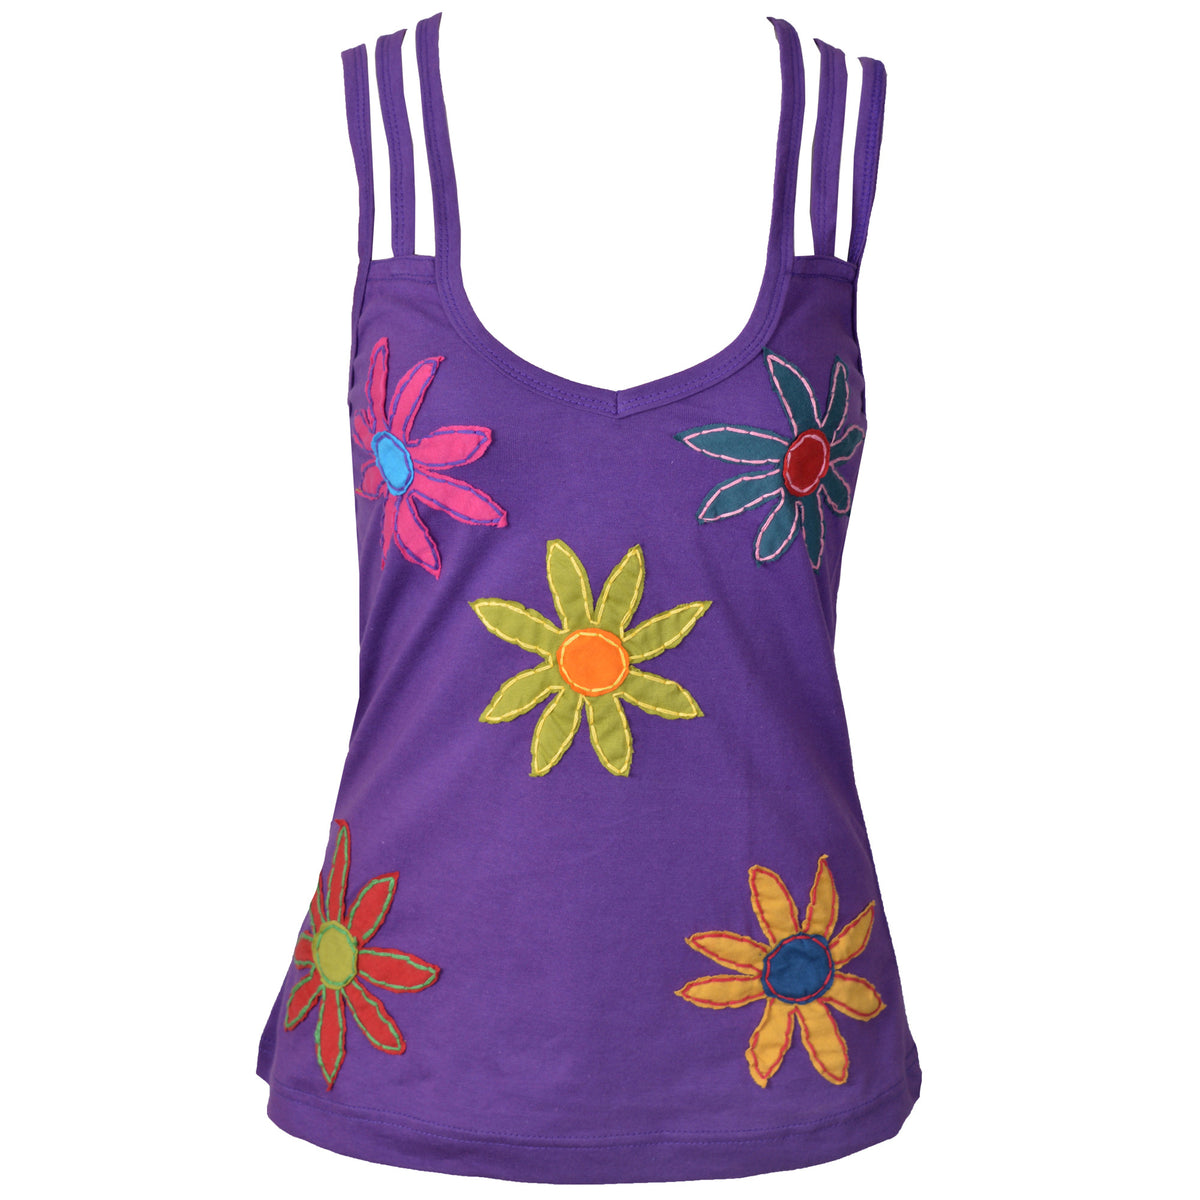 Flower Patched Spaghetti Strap Sleeveless Tops. - Craze Trade Limited